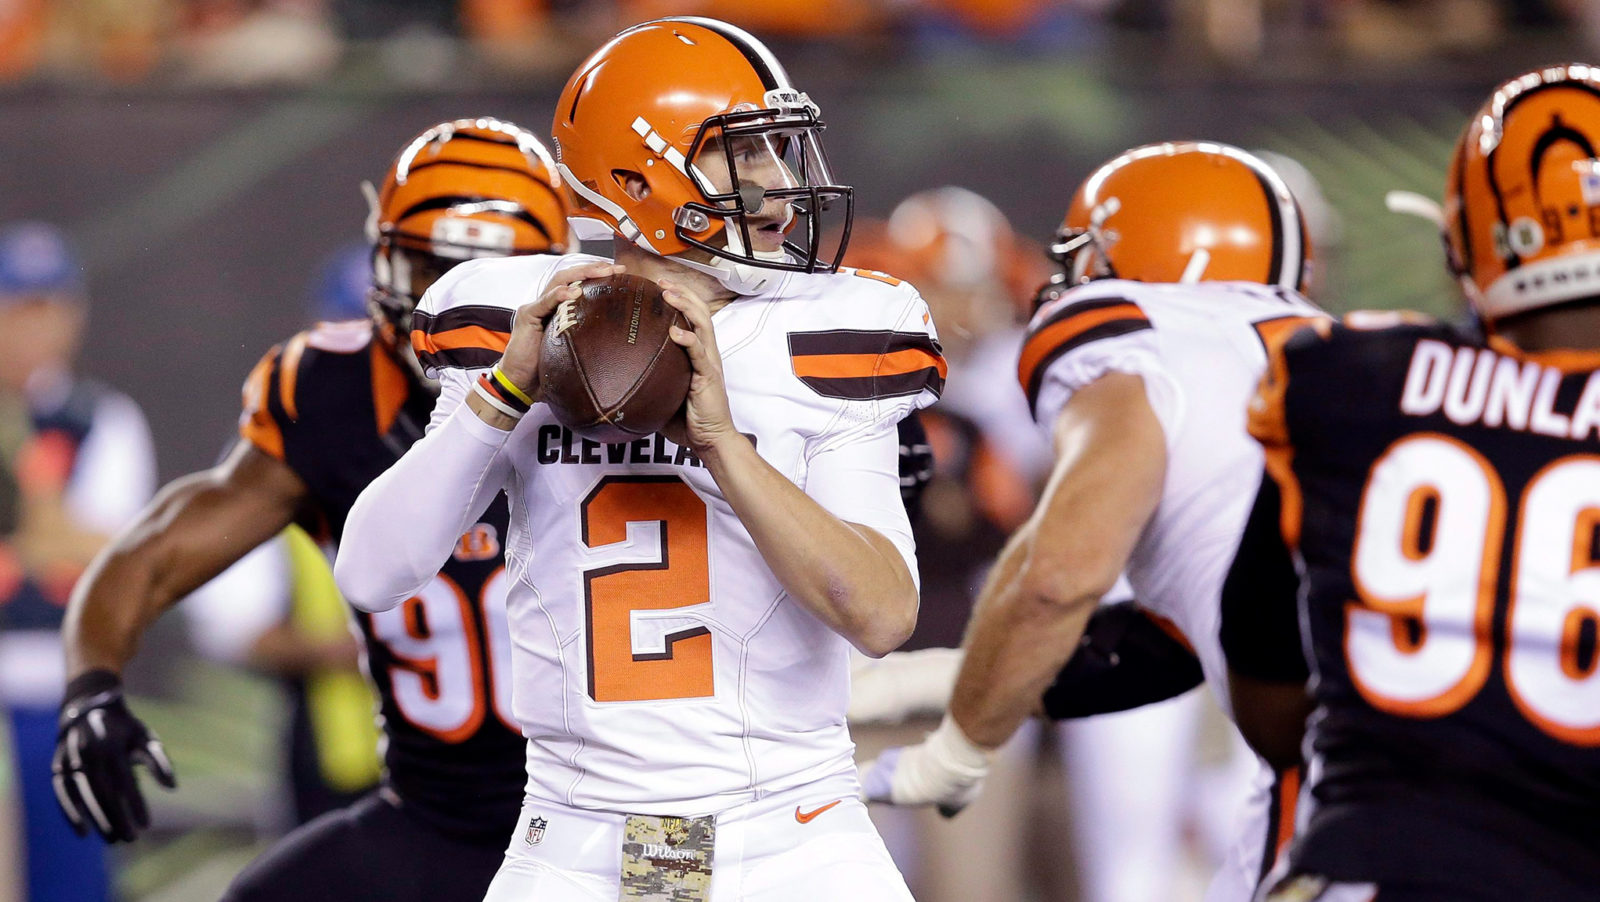 CFL commissioner clears way for Johnny Manziel to play in league